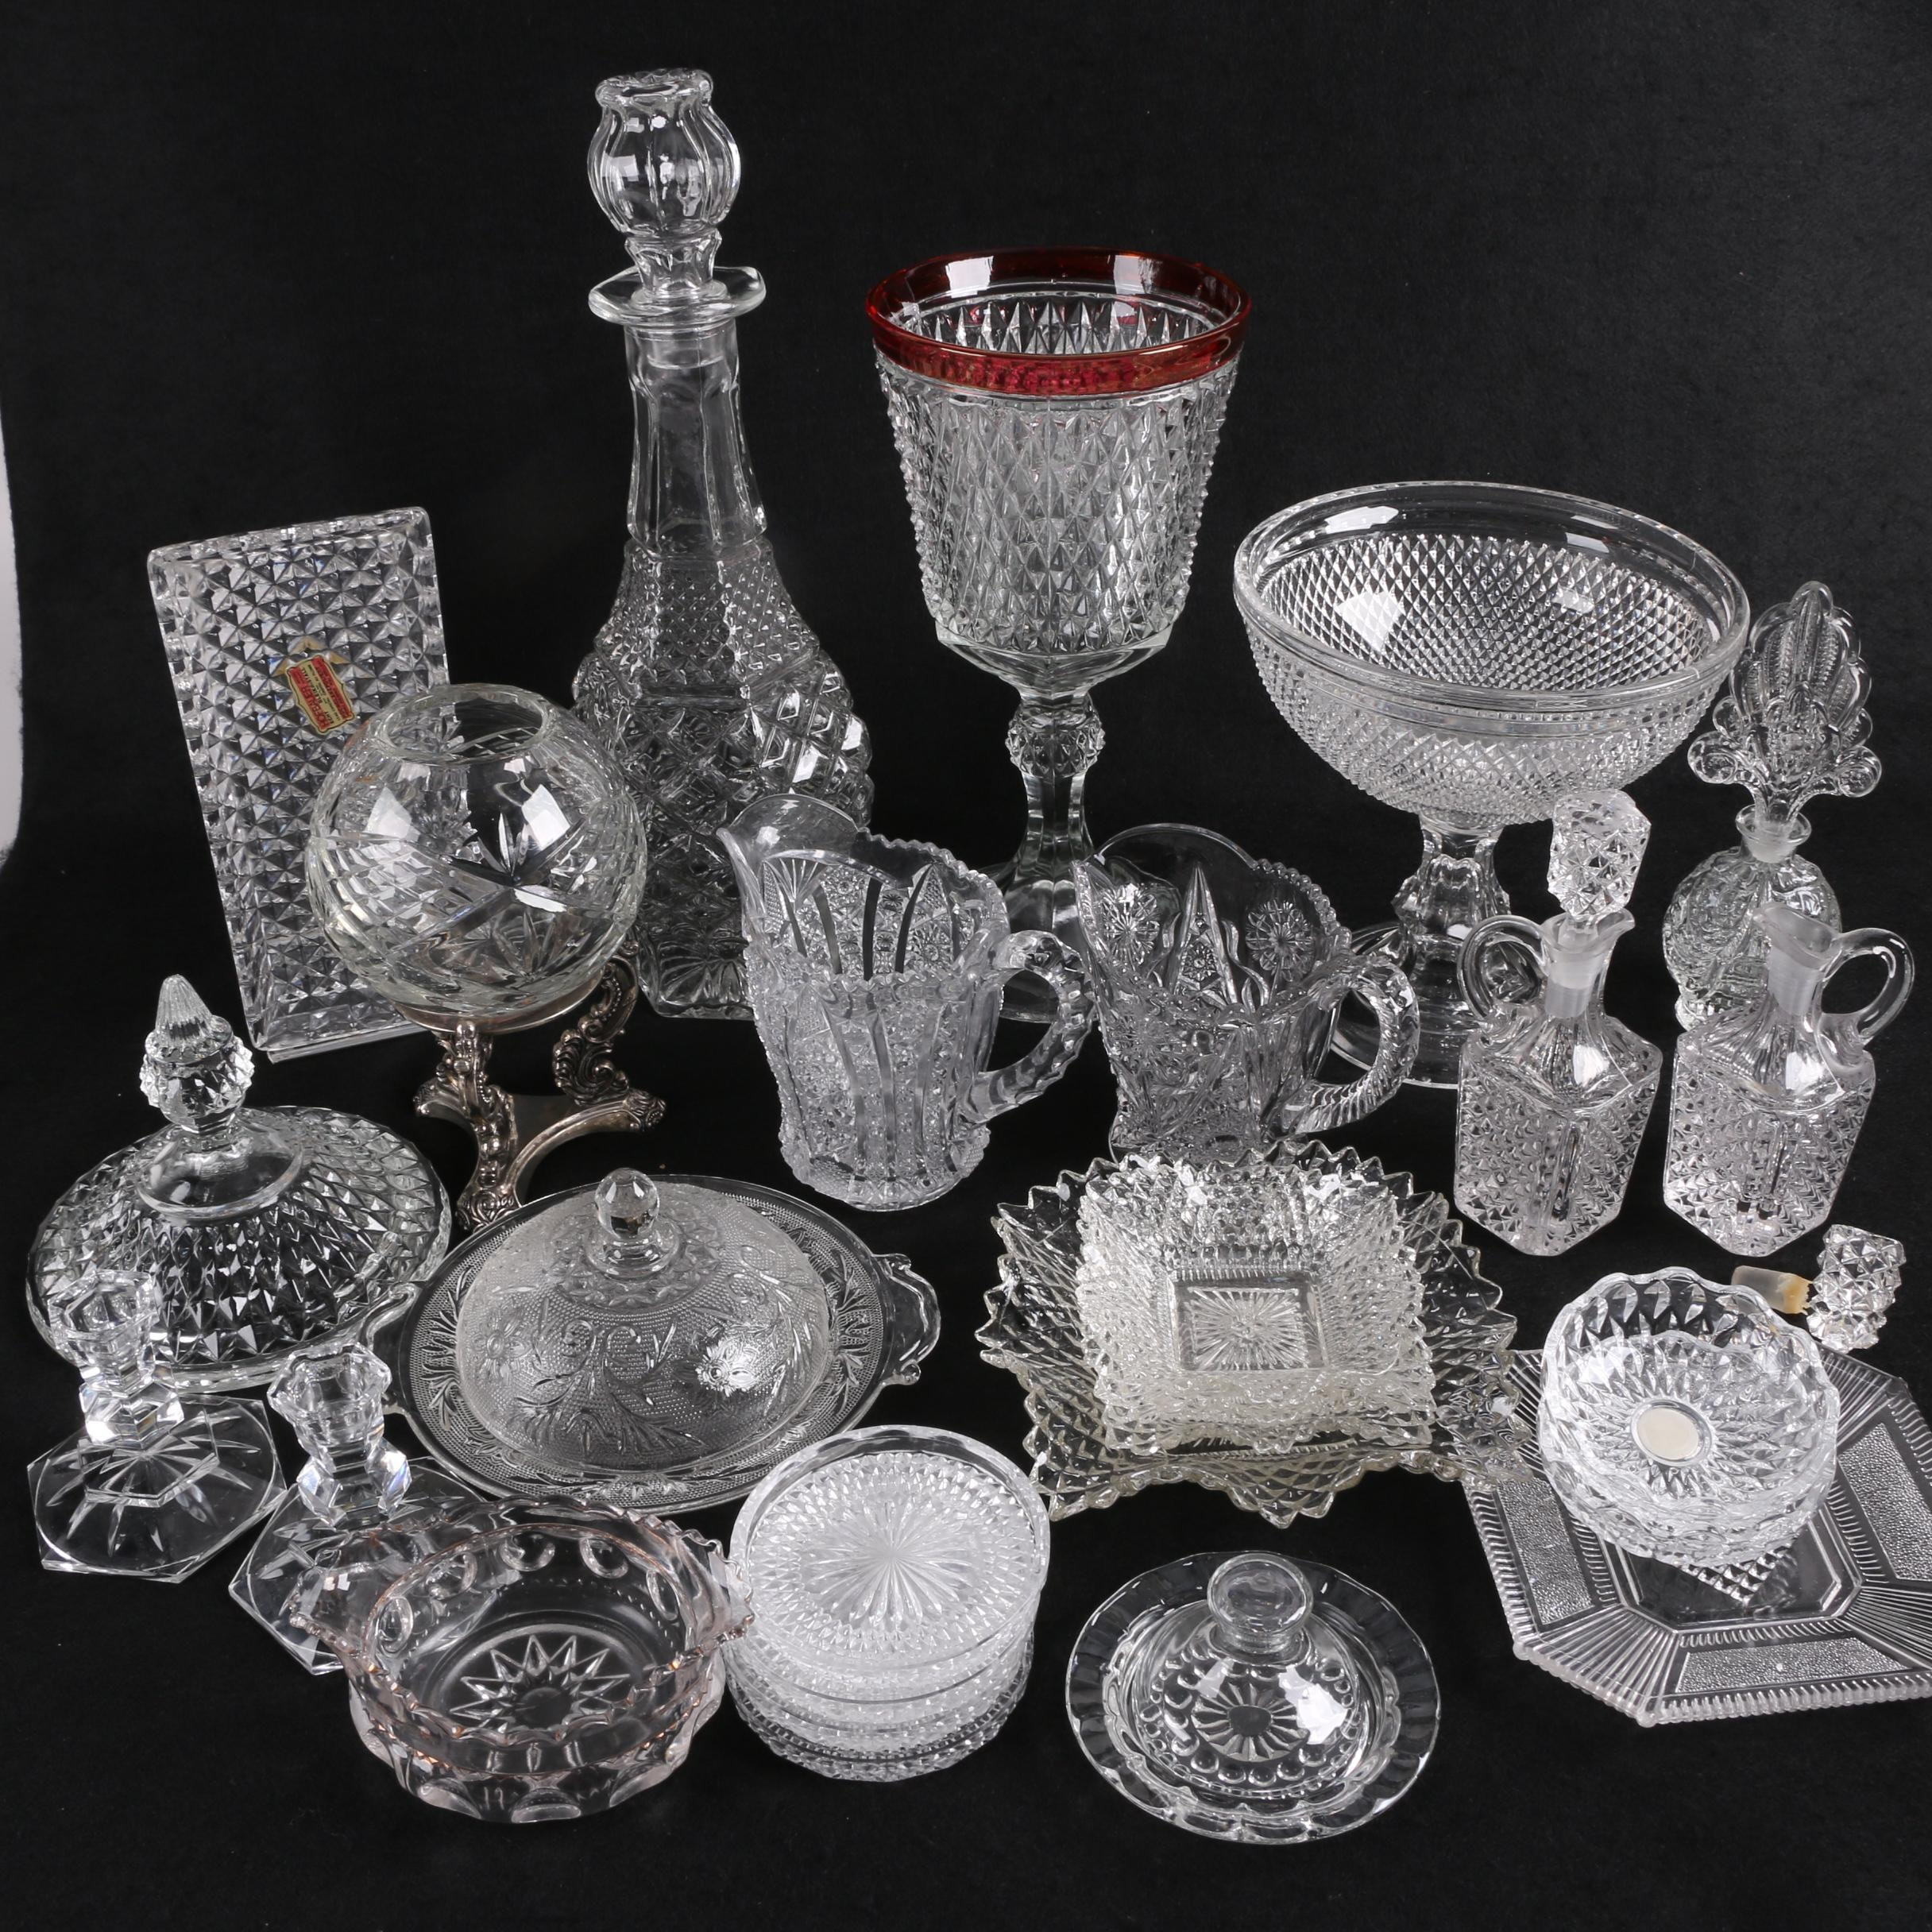 Towle Crystal Candleholders with Other Assorted Crystal and Glass Décor